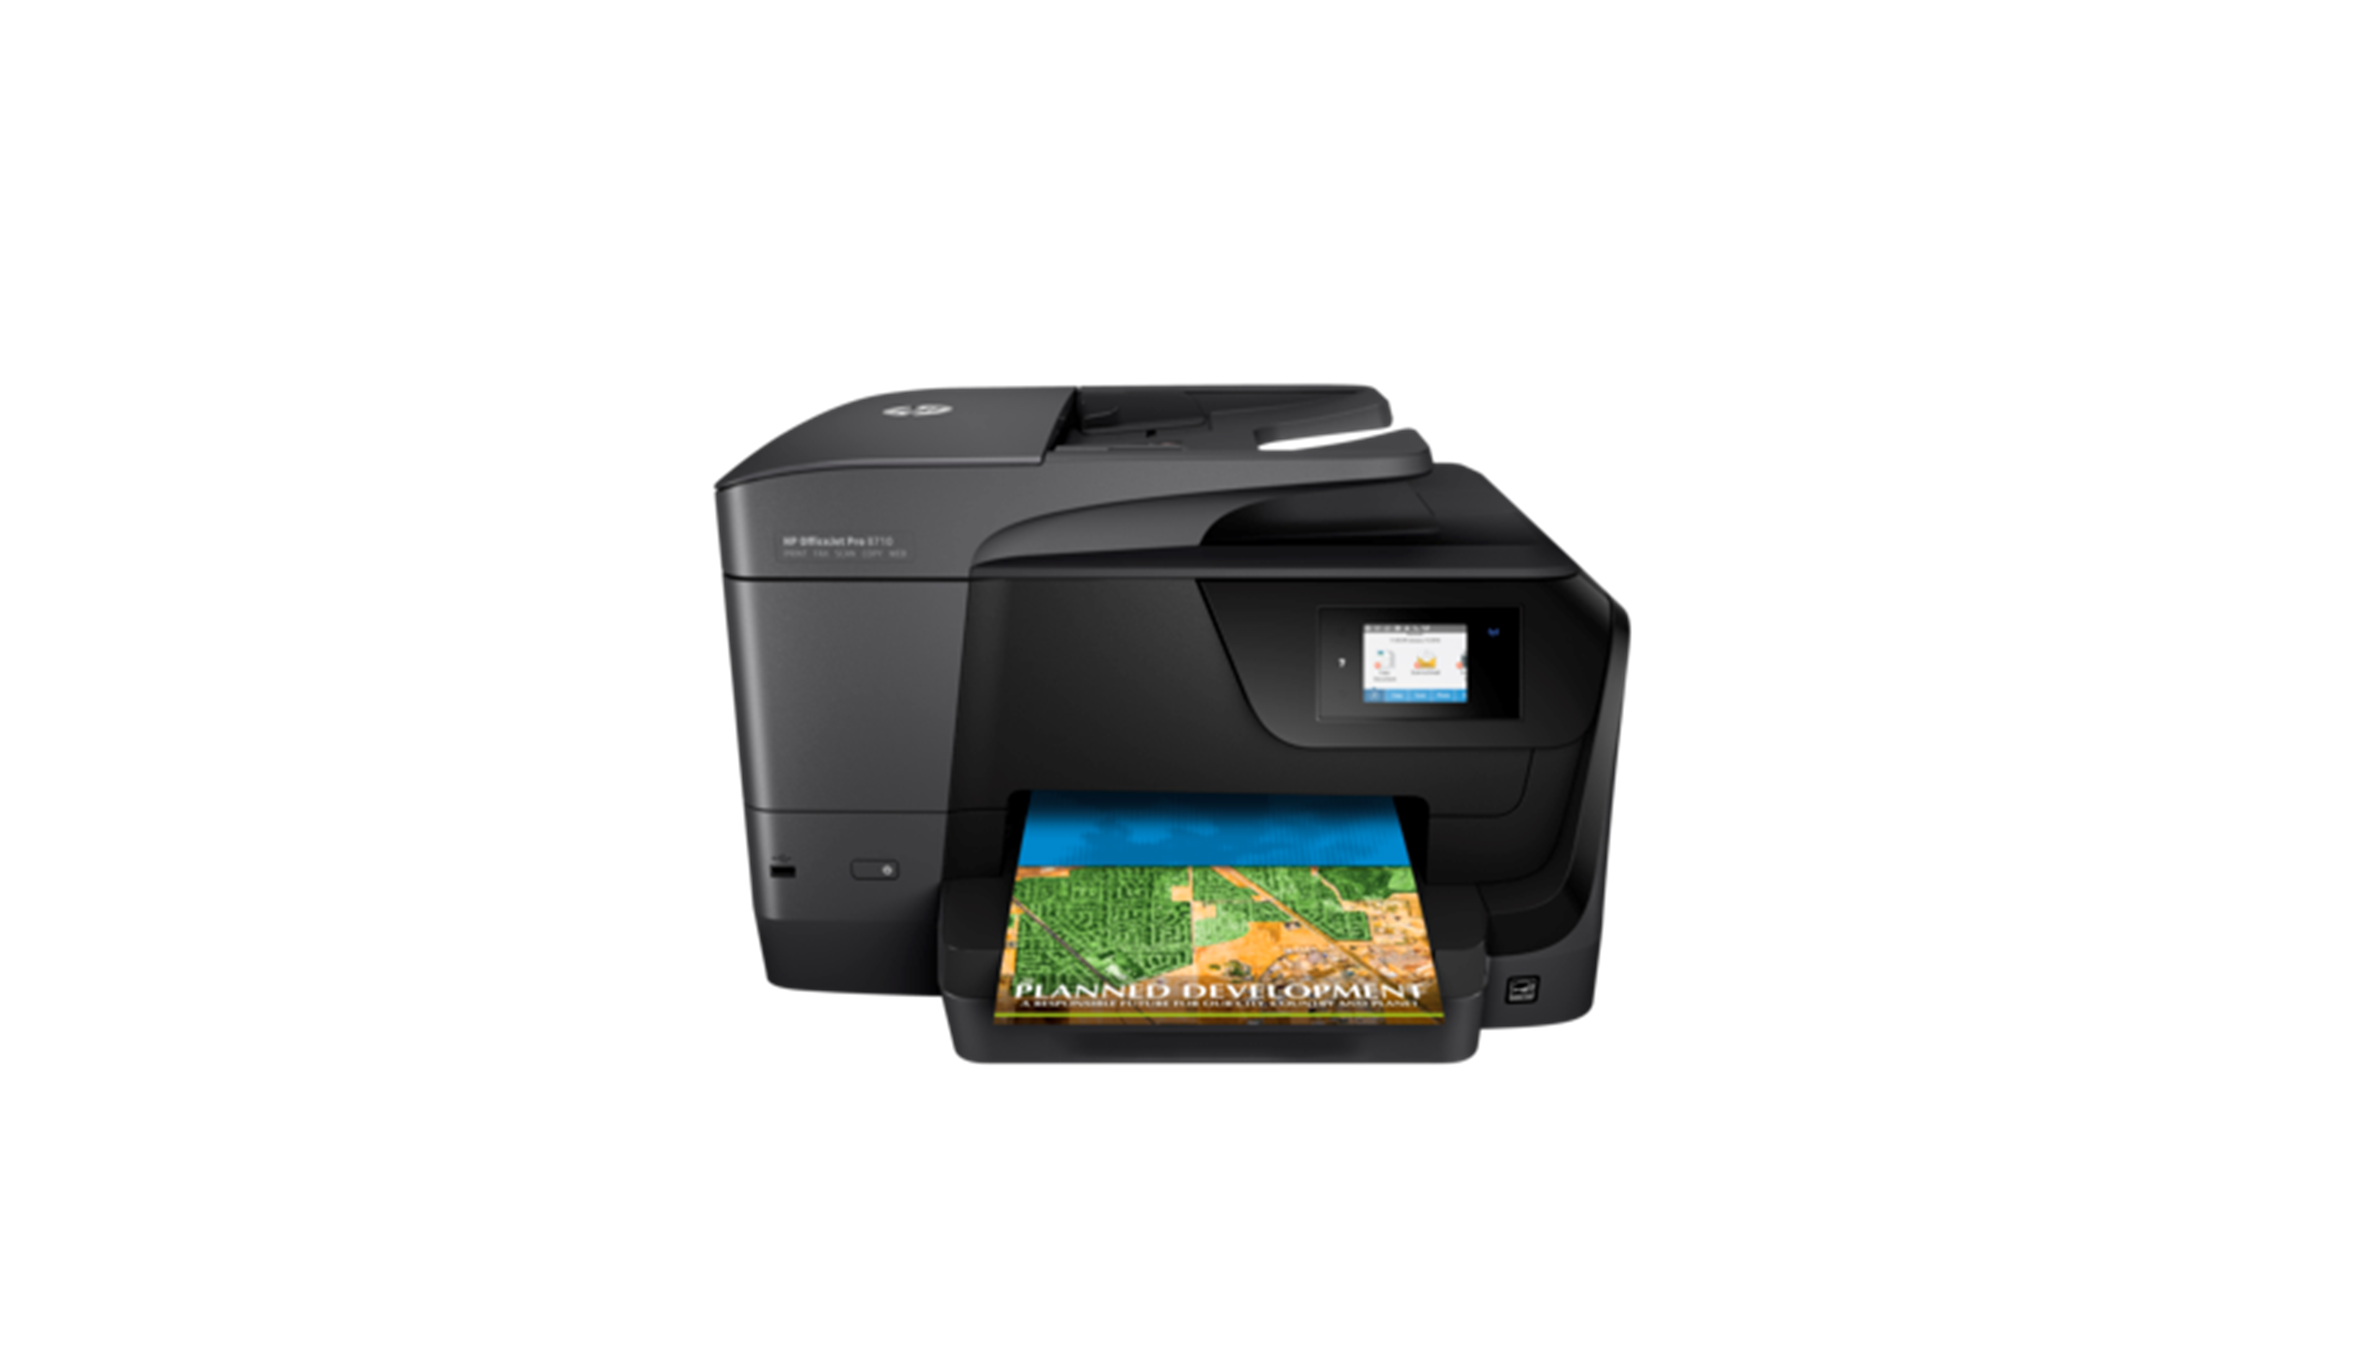 Hp Officejet Pro 8710 All In One Printer Harvey Norman Singapore